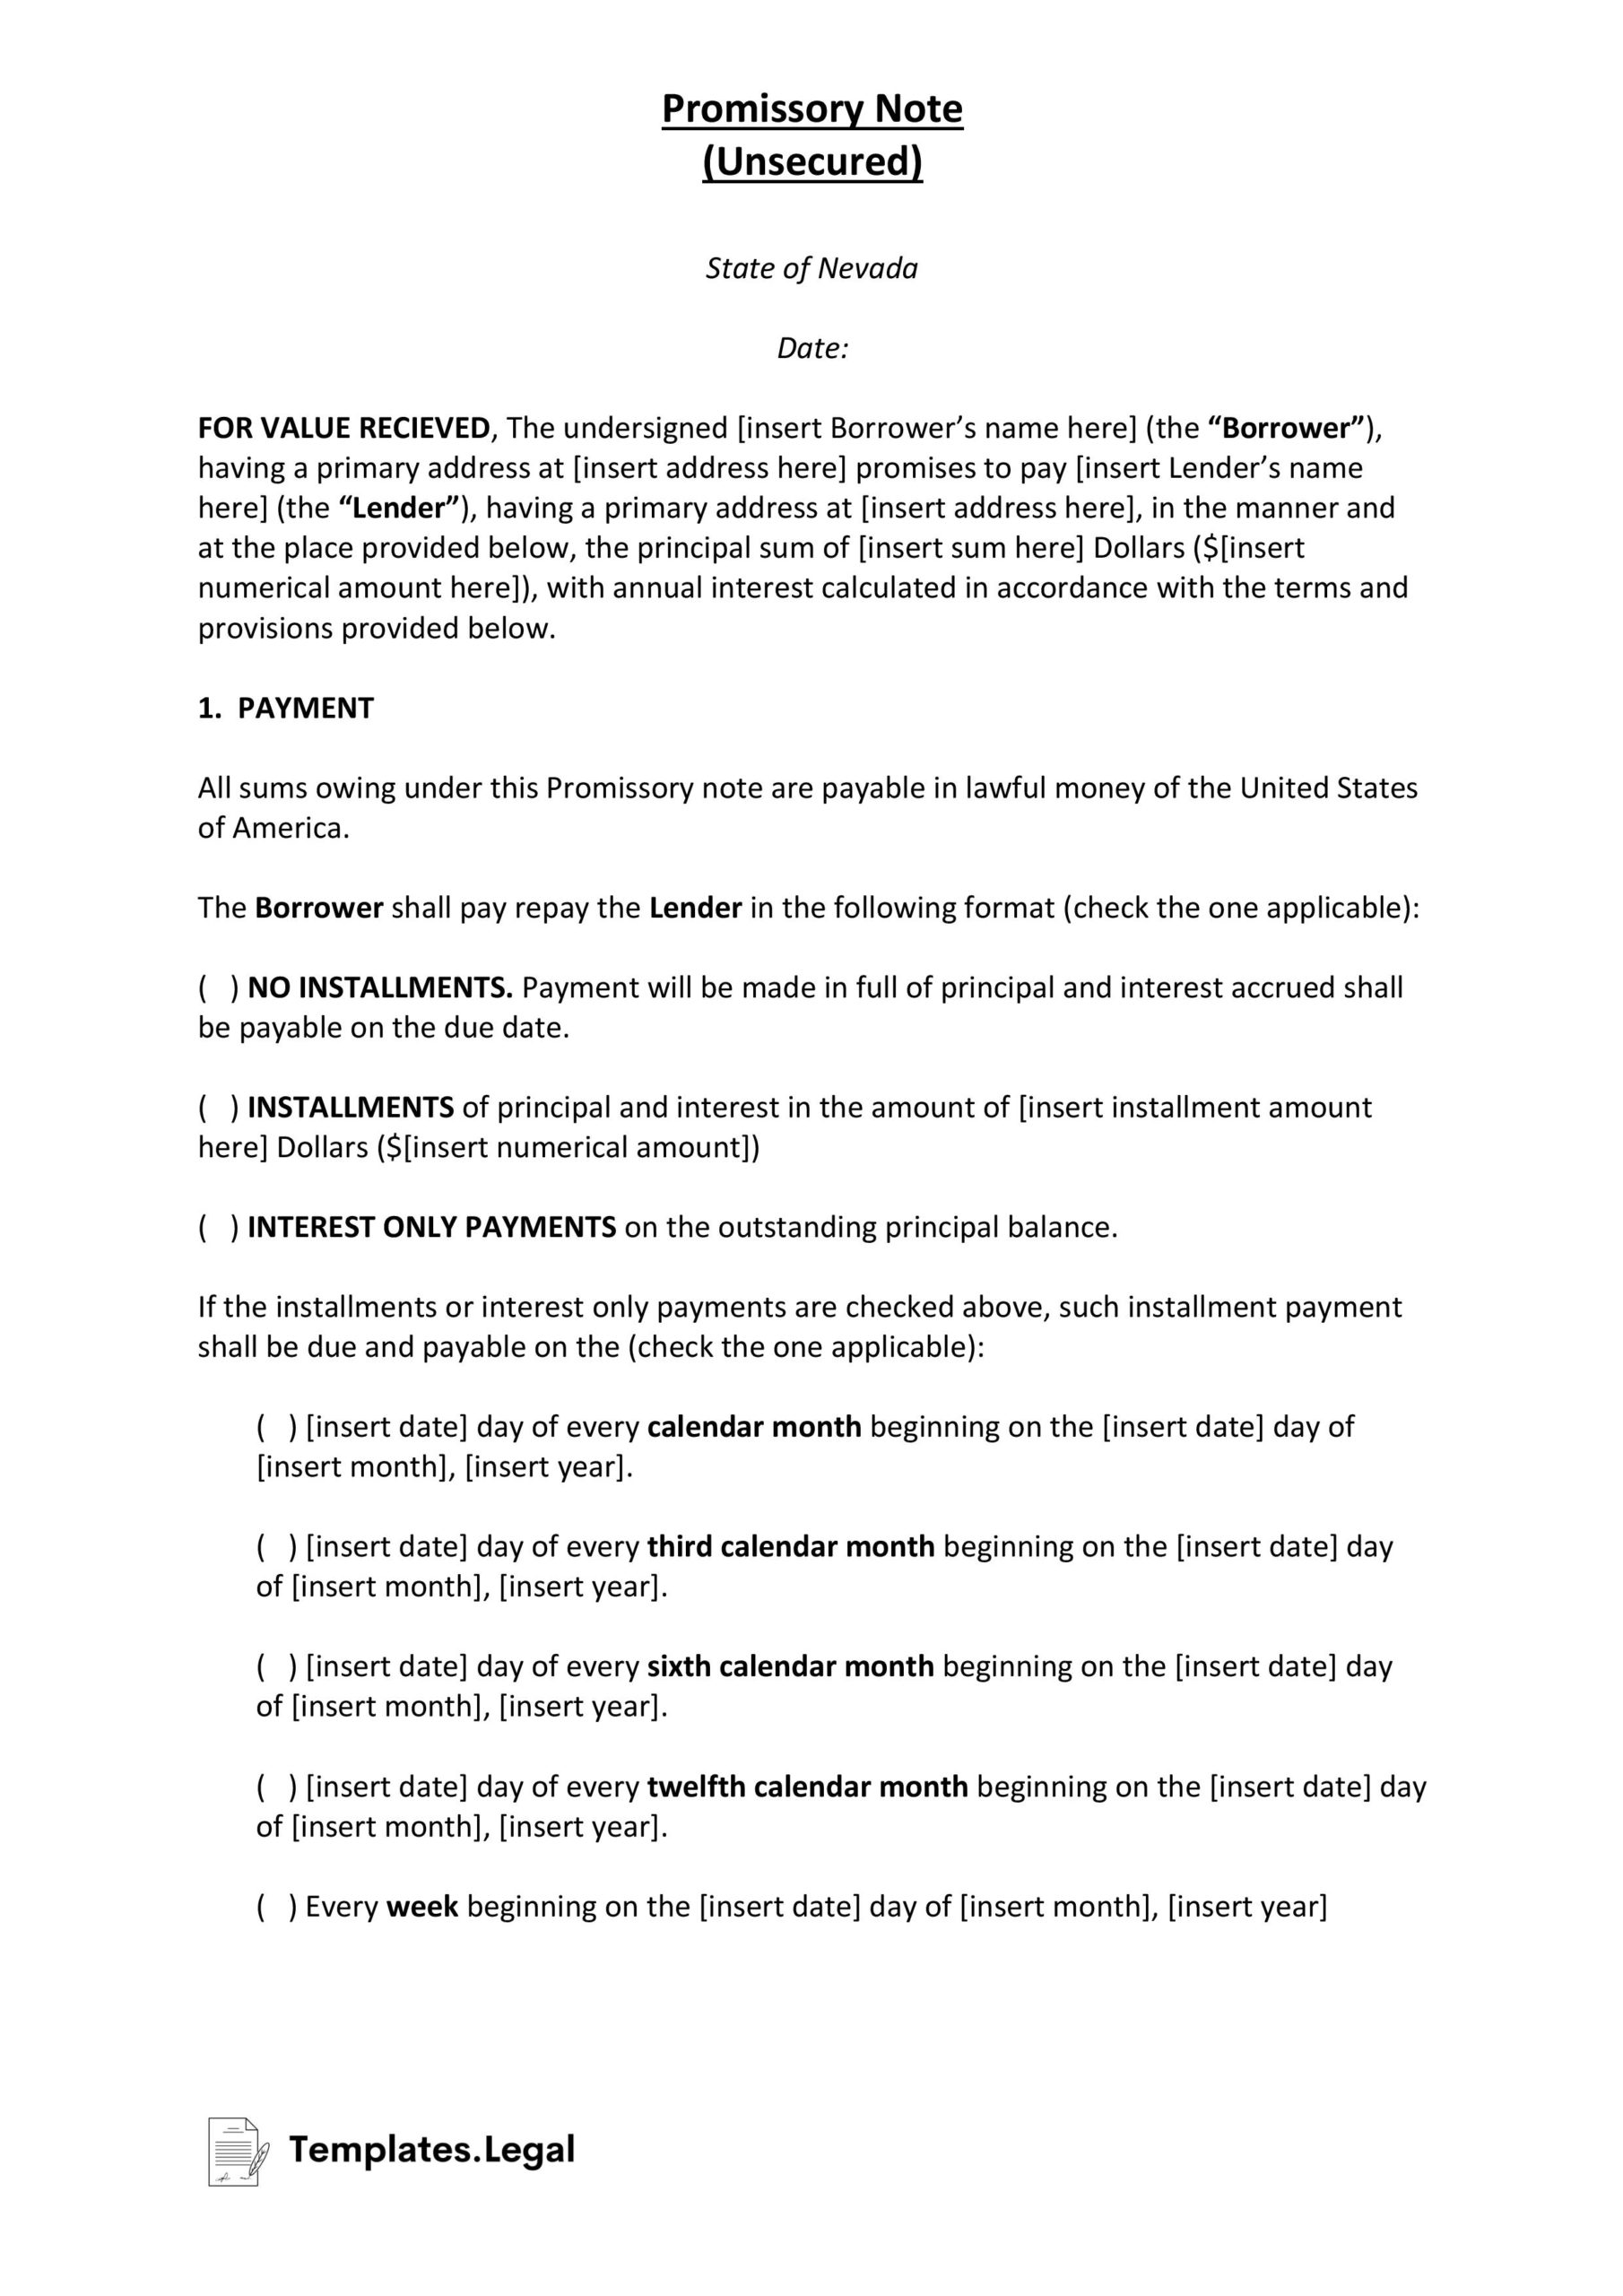 Nevada Unsecured Promissory Note - Templates.Legal